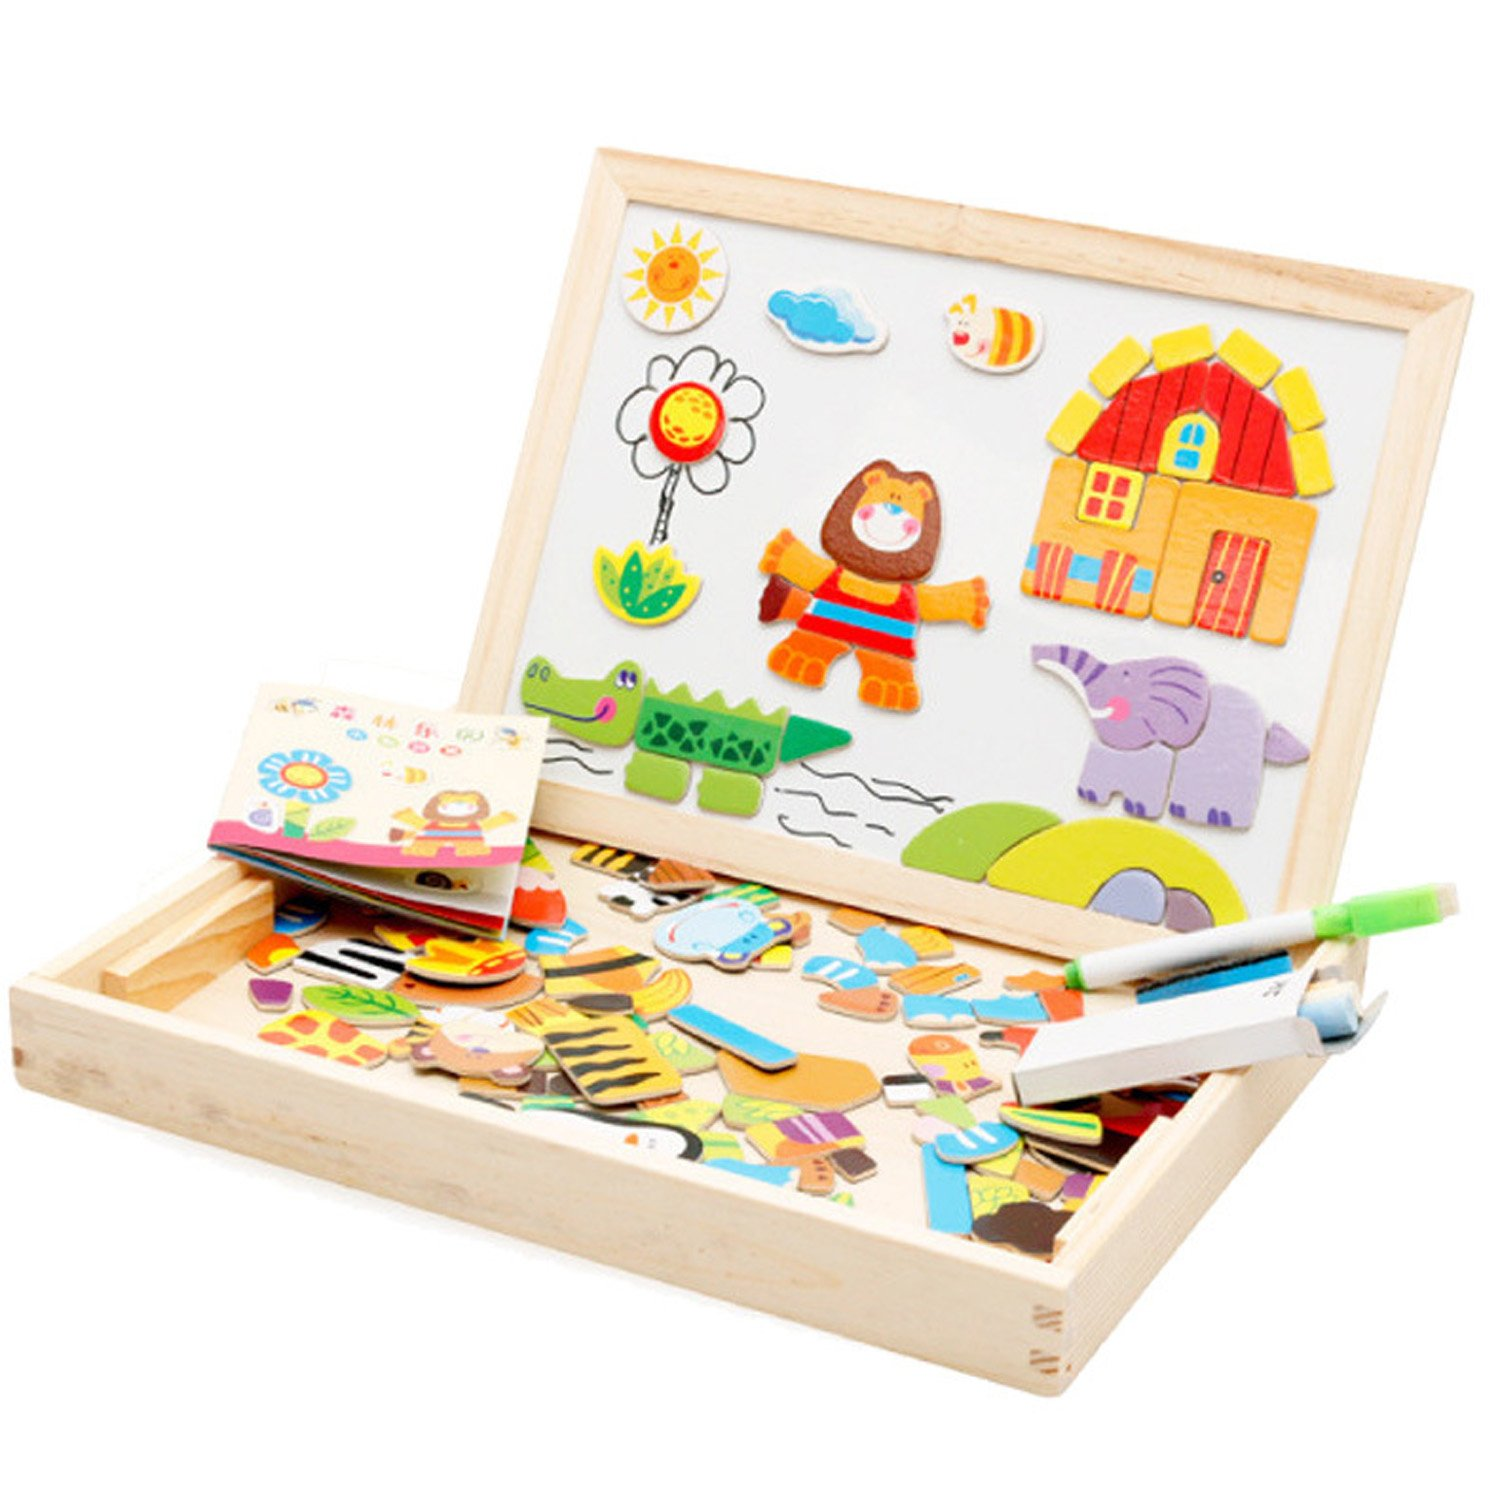 Wooden Educational Toys Magnetic Art Easel Animals Puzzle Games for Kids